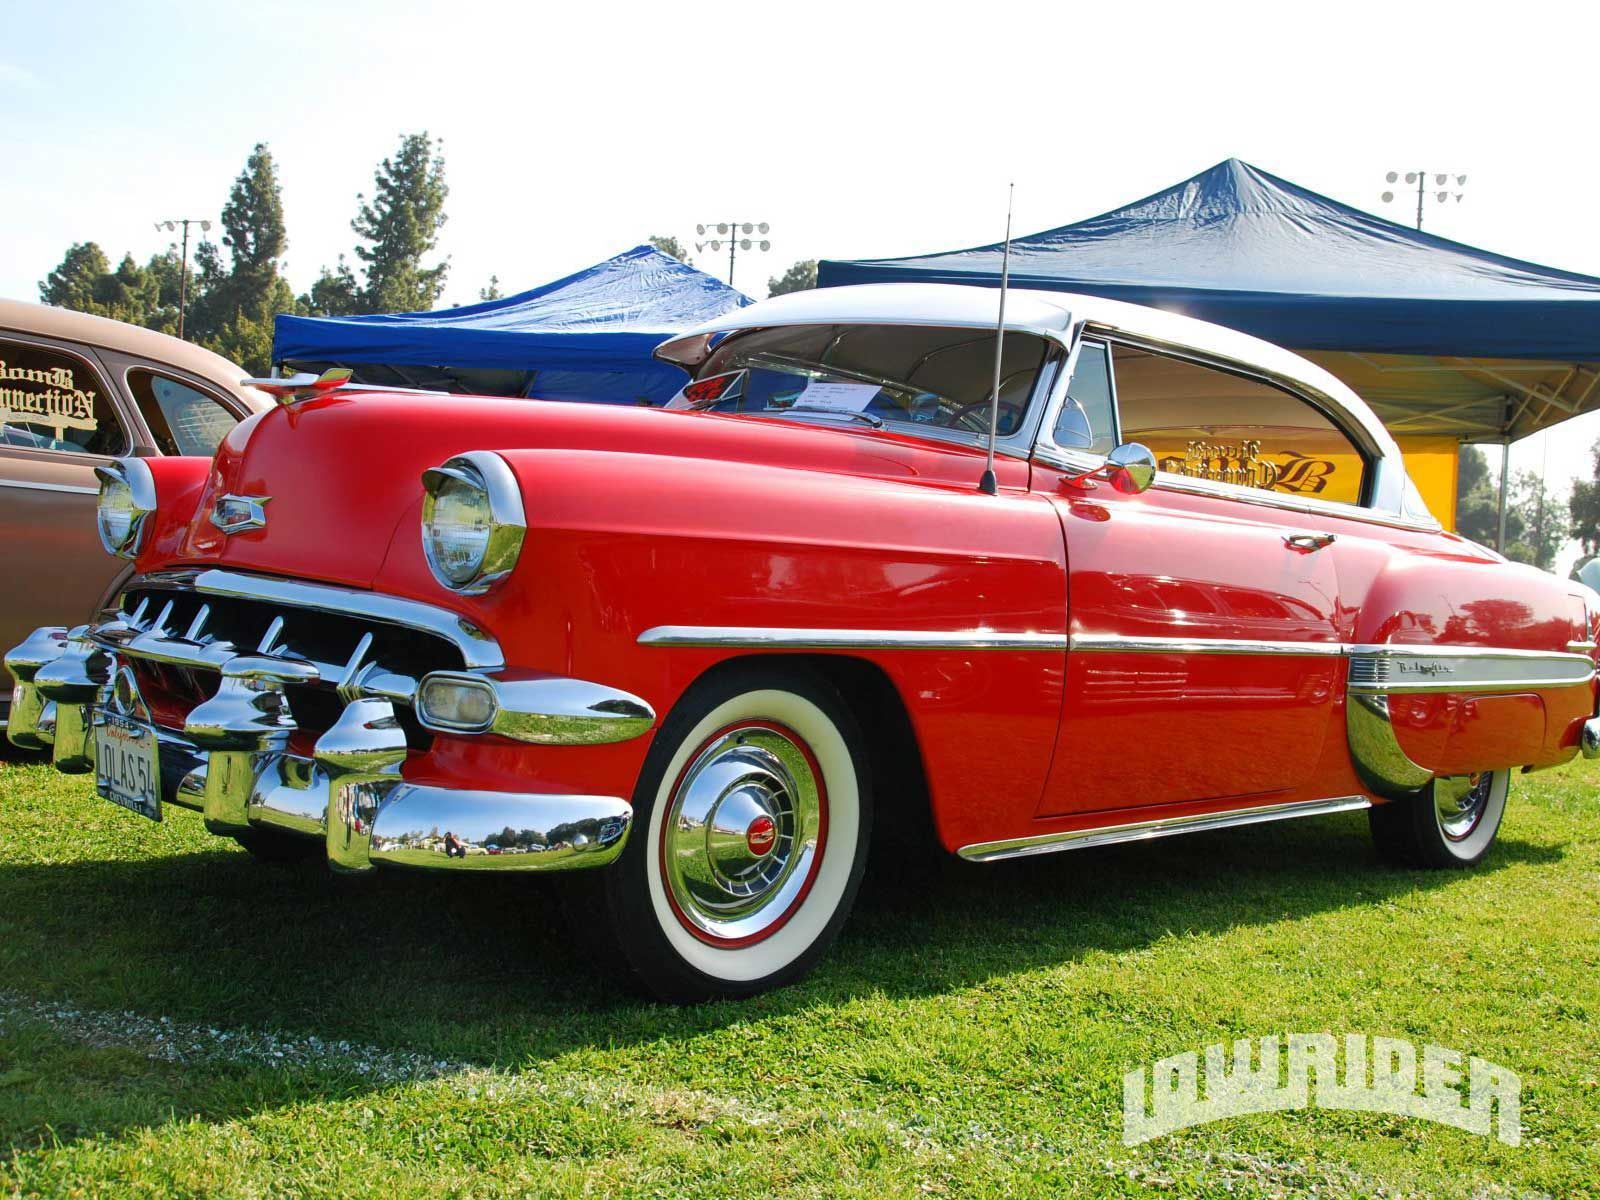 1954 Chevy | Low riders chale | Pinterest | Chevrolet, Cars and Low ...